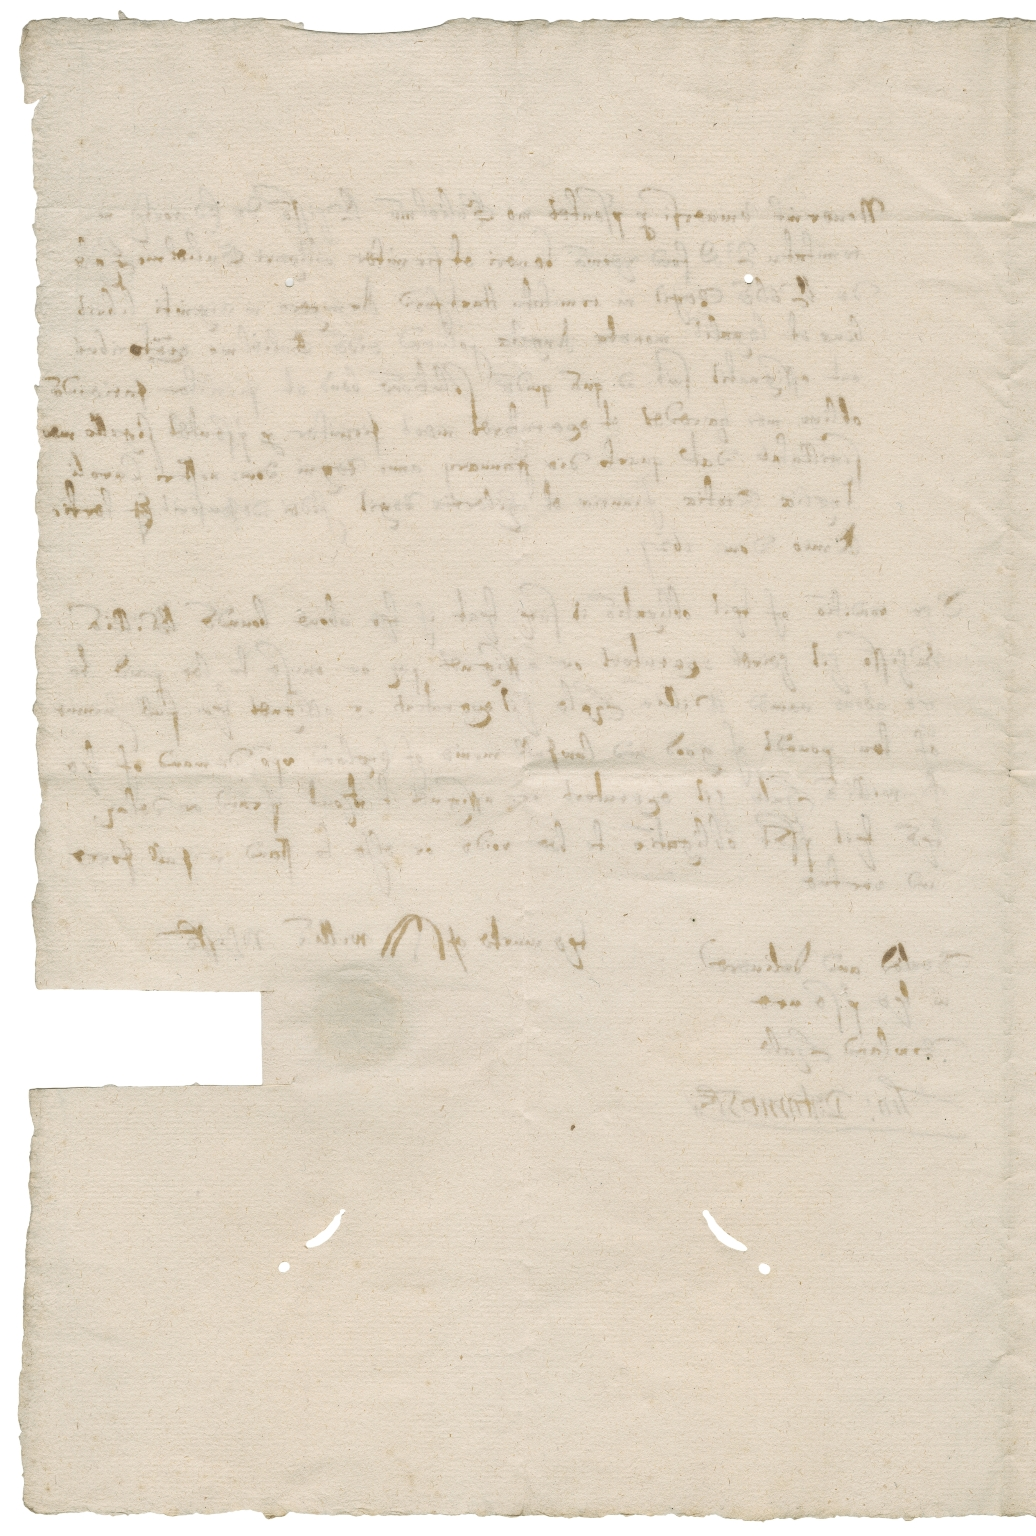 Bond from William Whisson of Edworth, Bedfordshire, to William Hale of King's Walden